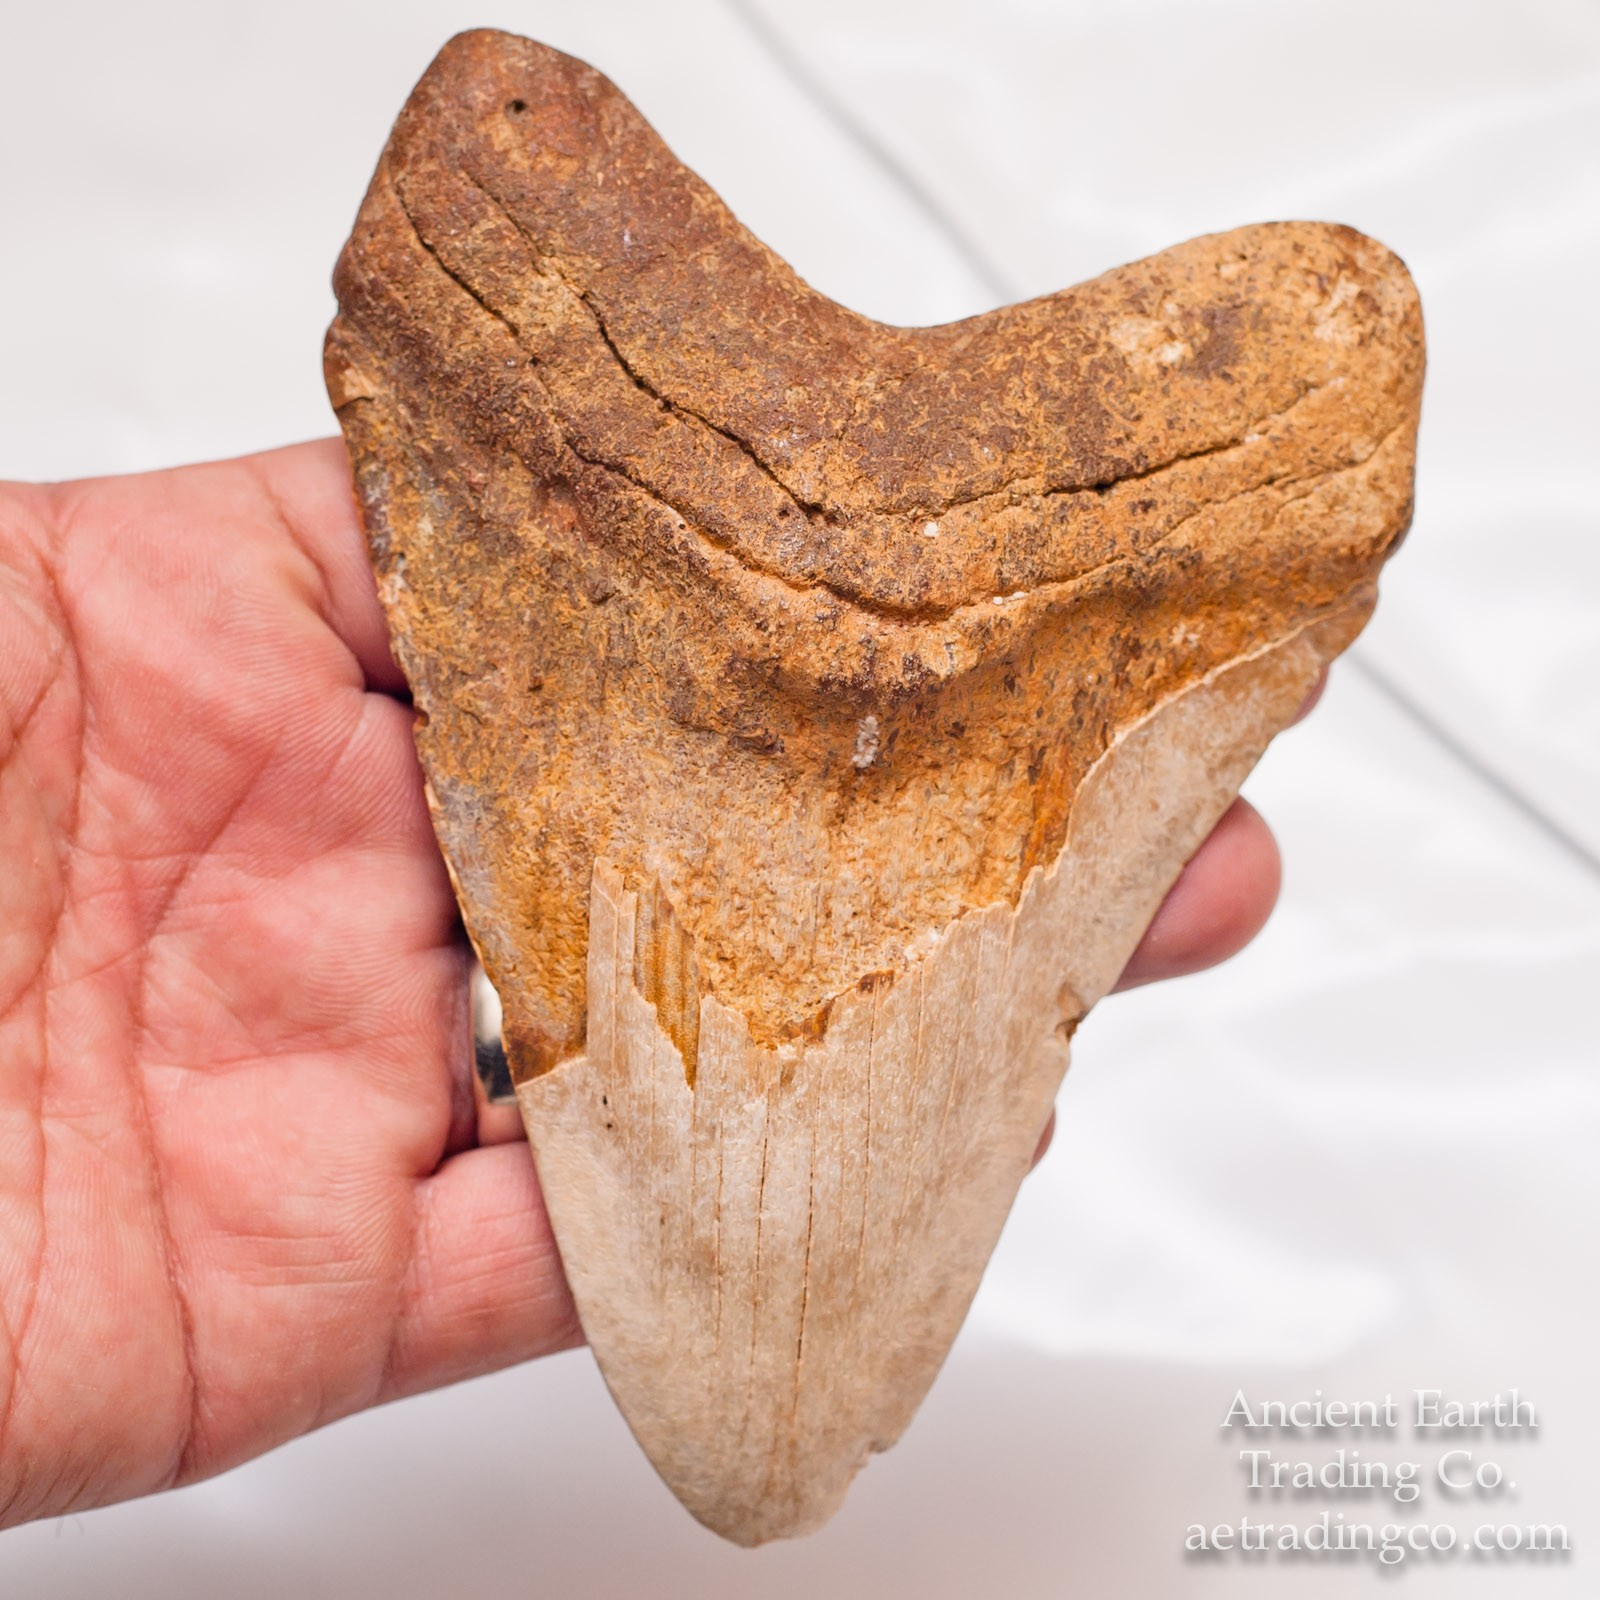 Giant 5.25 inch White C. Megalodon Fossil Shark Tooth from Western Sahara (Morocco), Africa